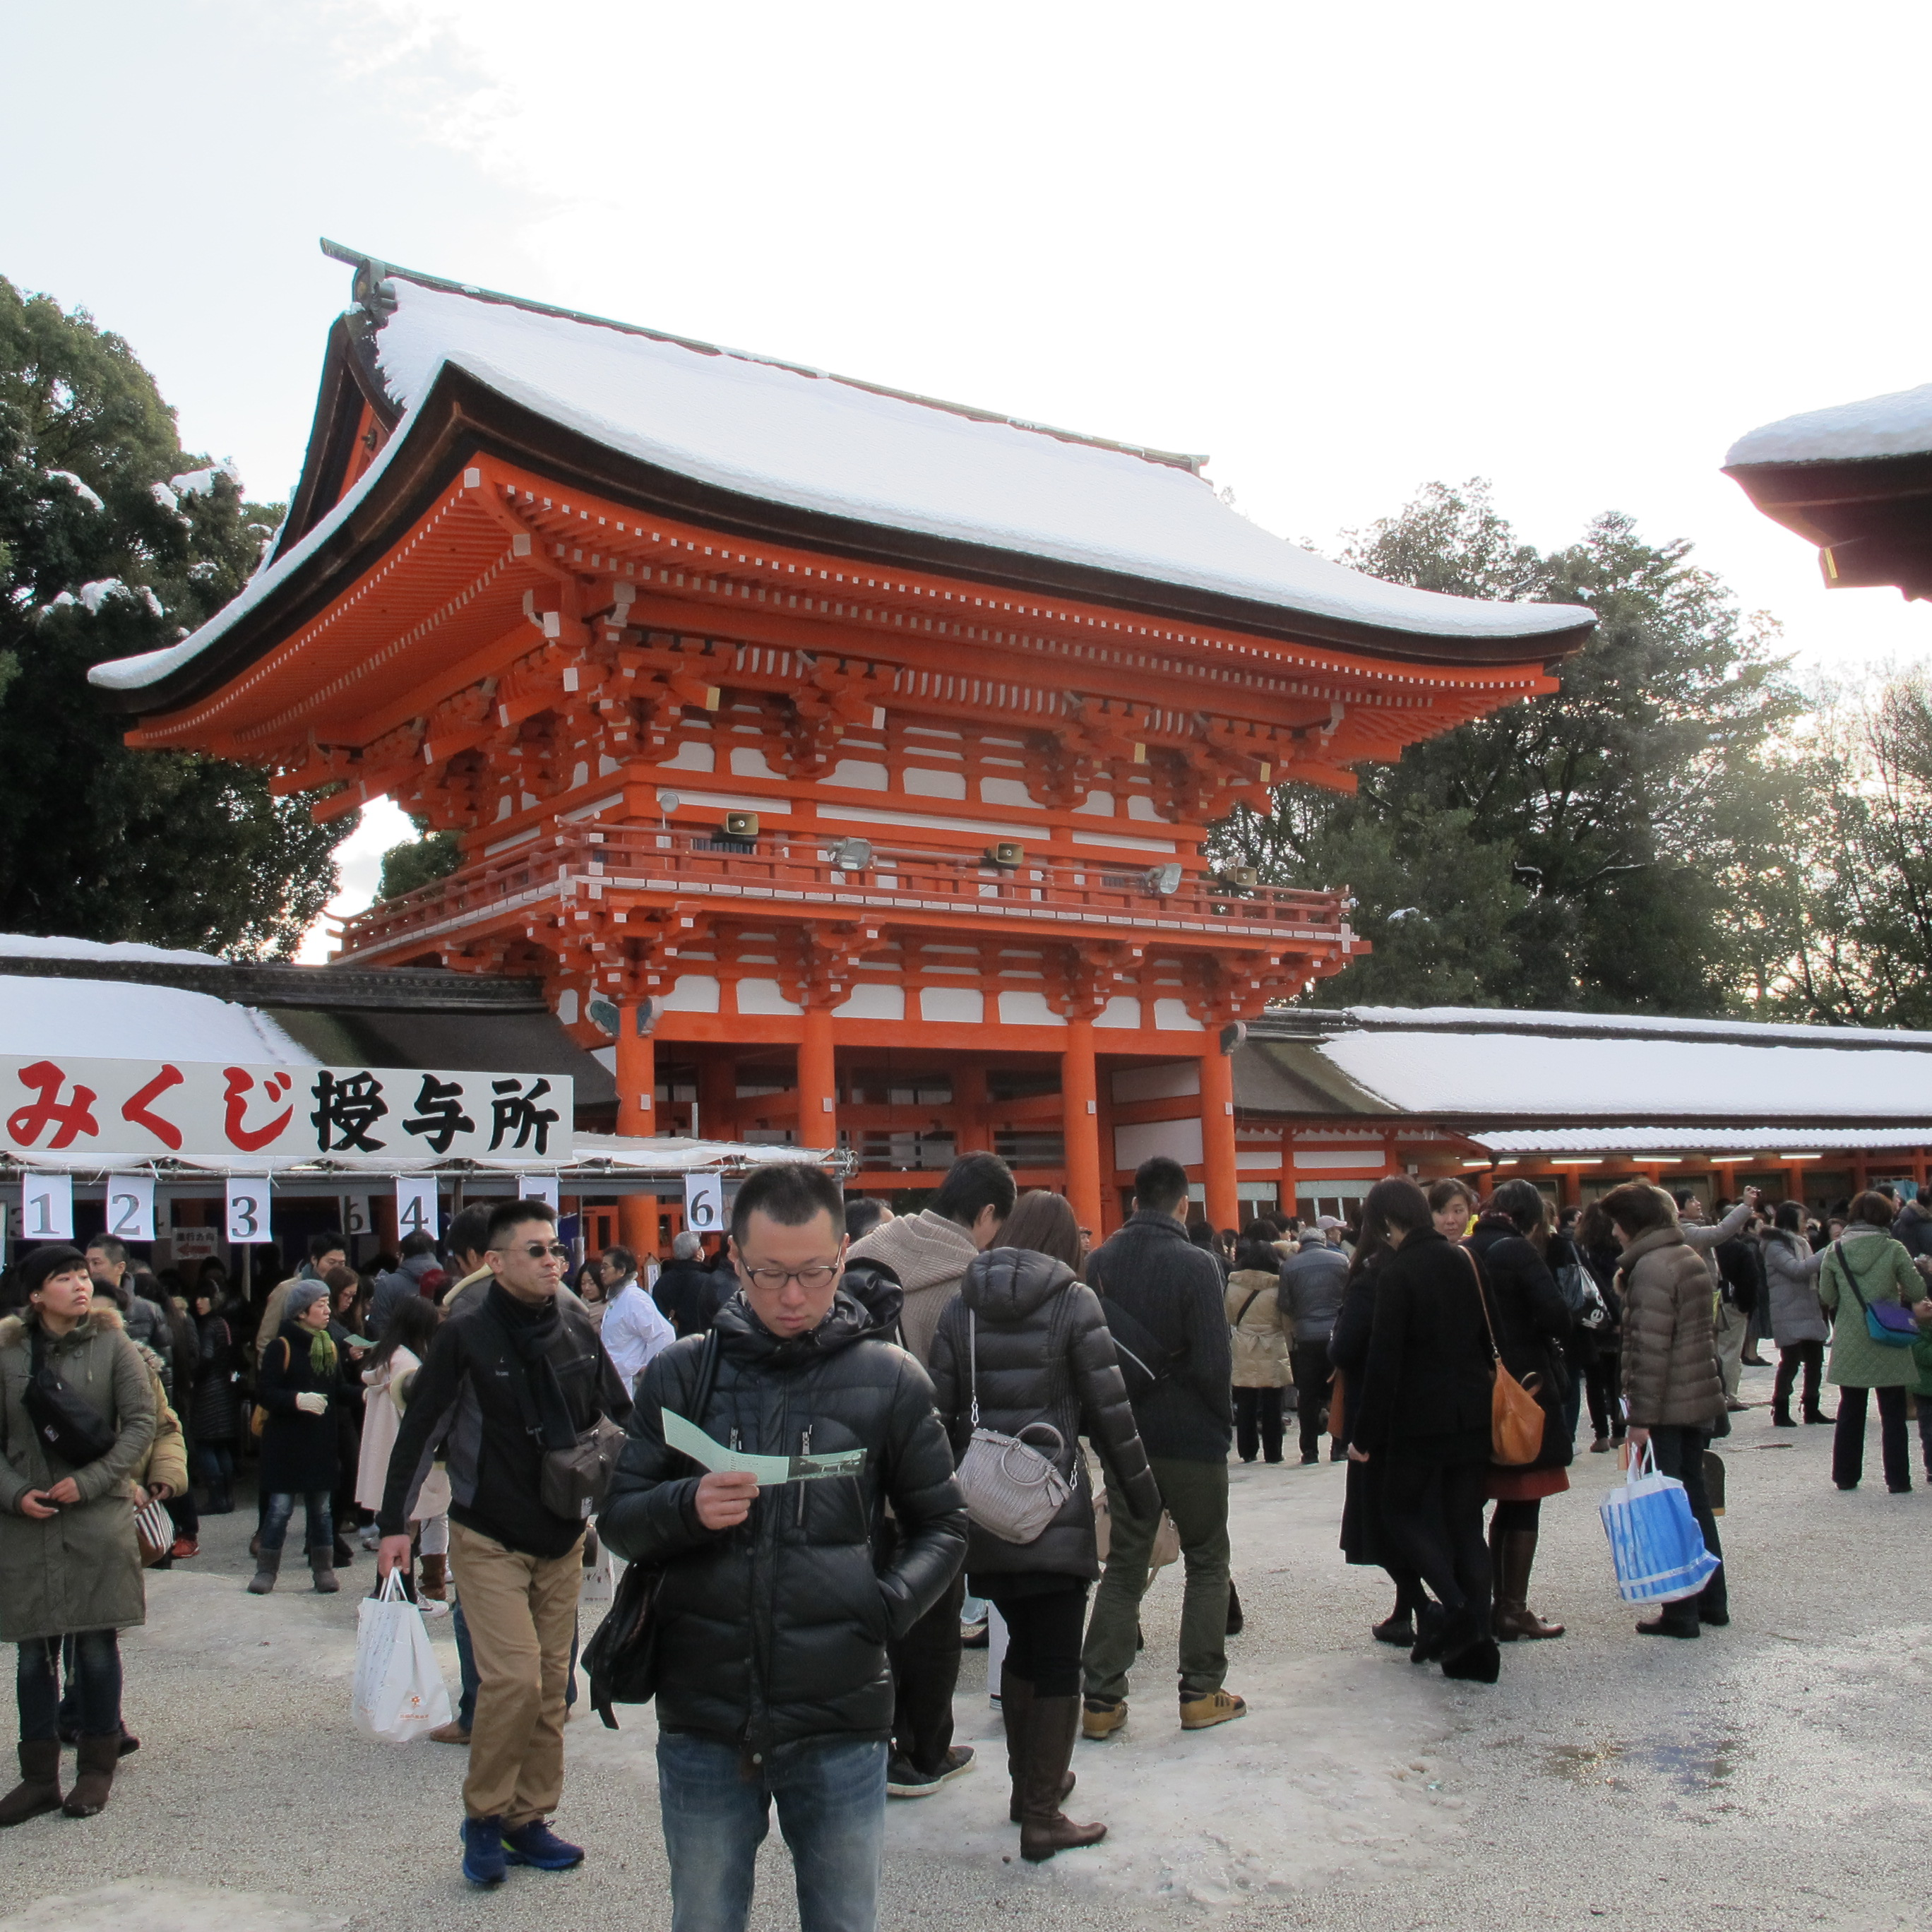 Shimogamo Jinja is  one of the oldest shrines in Japan and is one of the seventeen Historic Monuments of Ancient Kyoto which have been designated by UNESCO as a World Heritage Site.